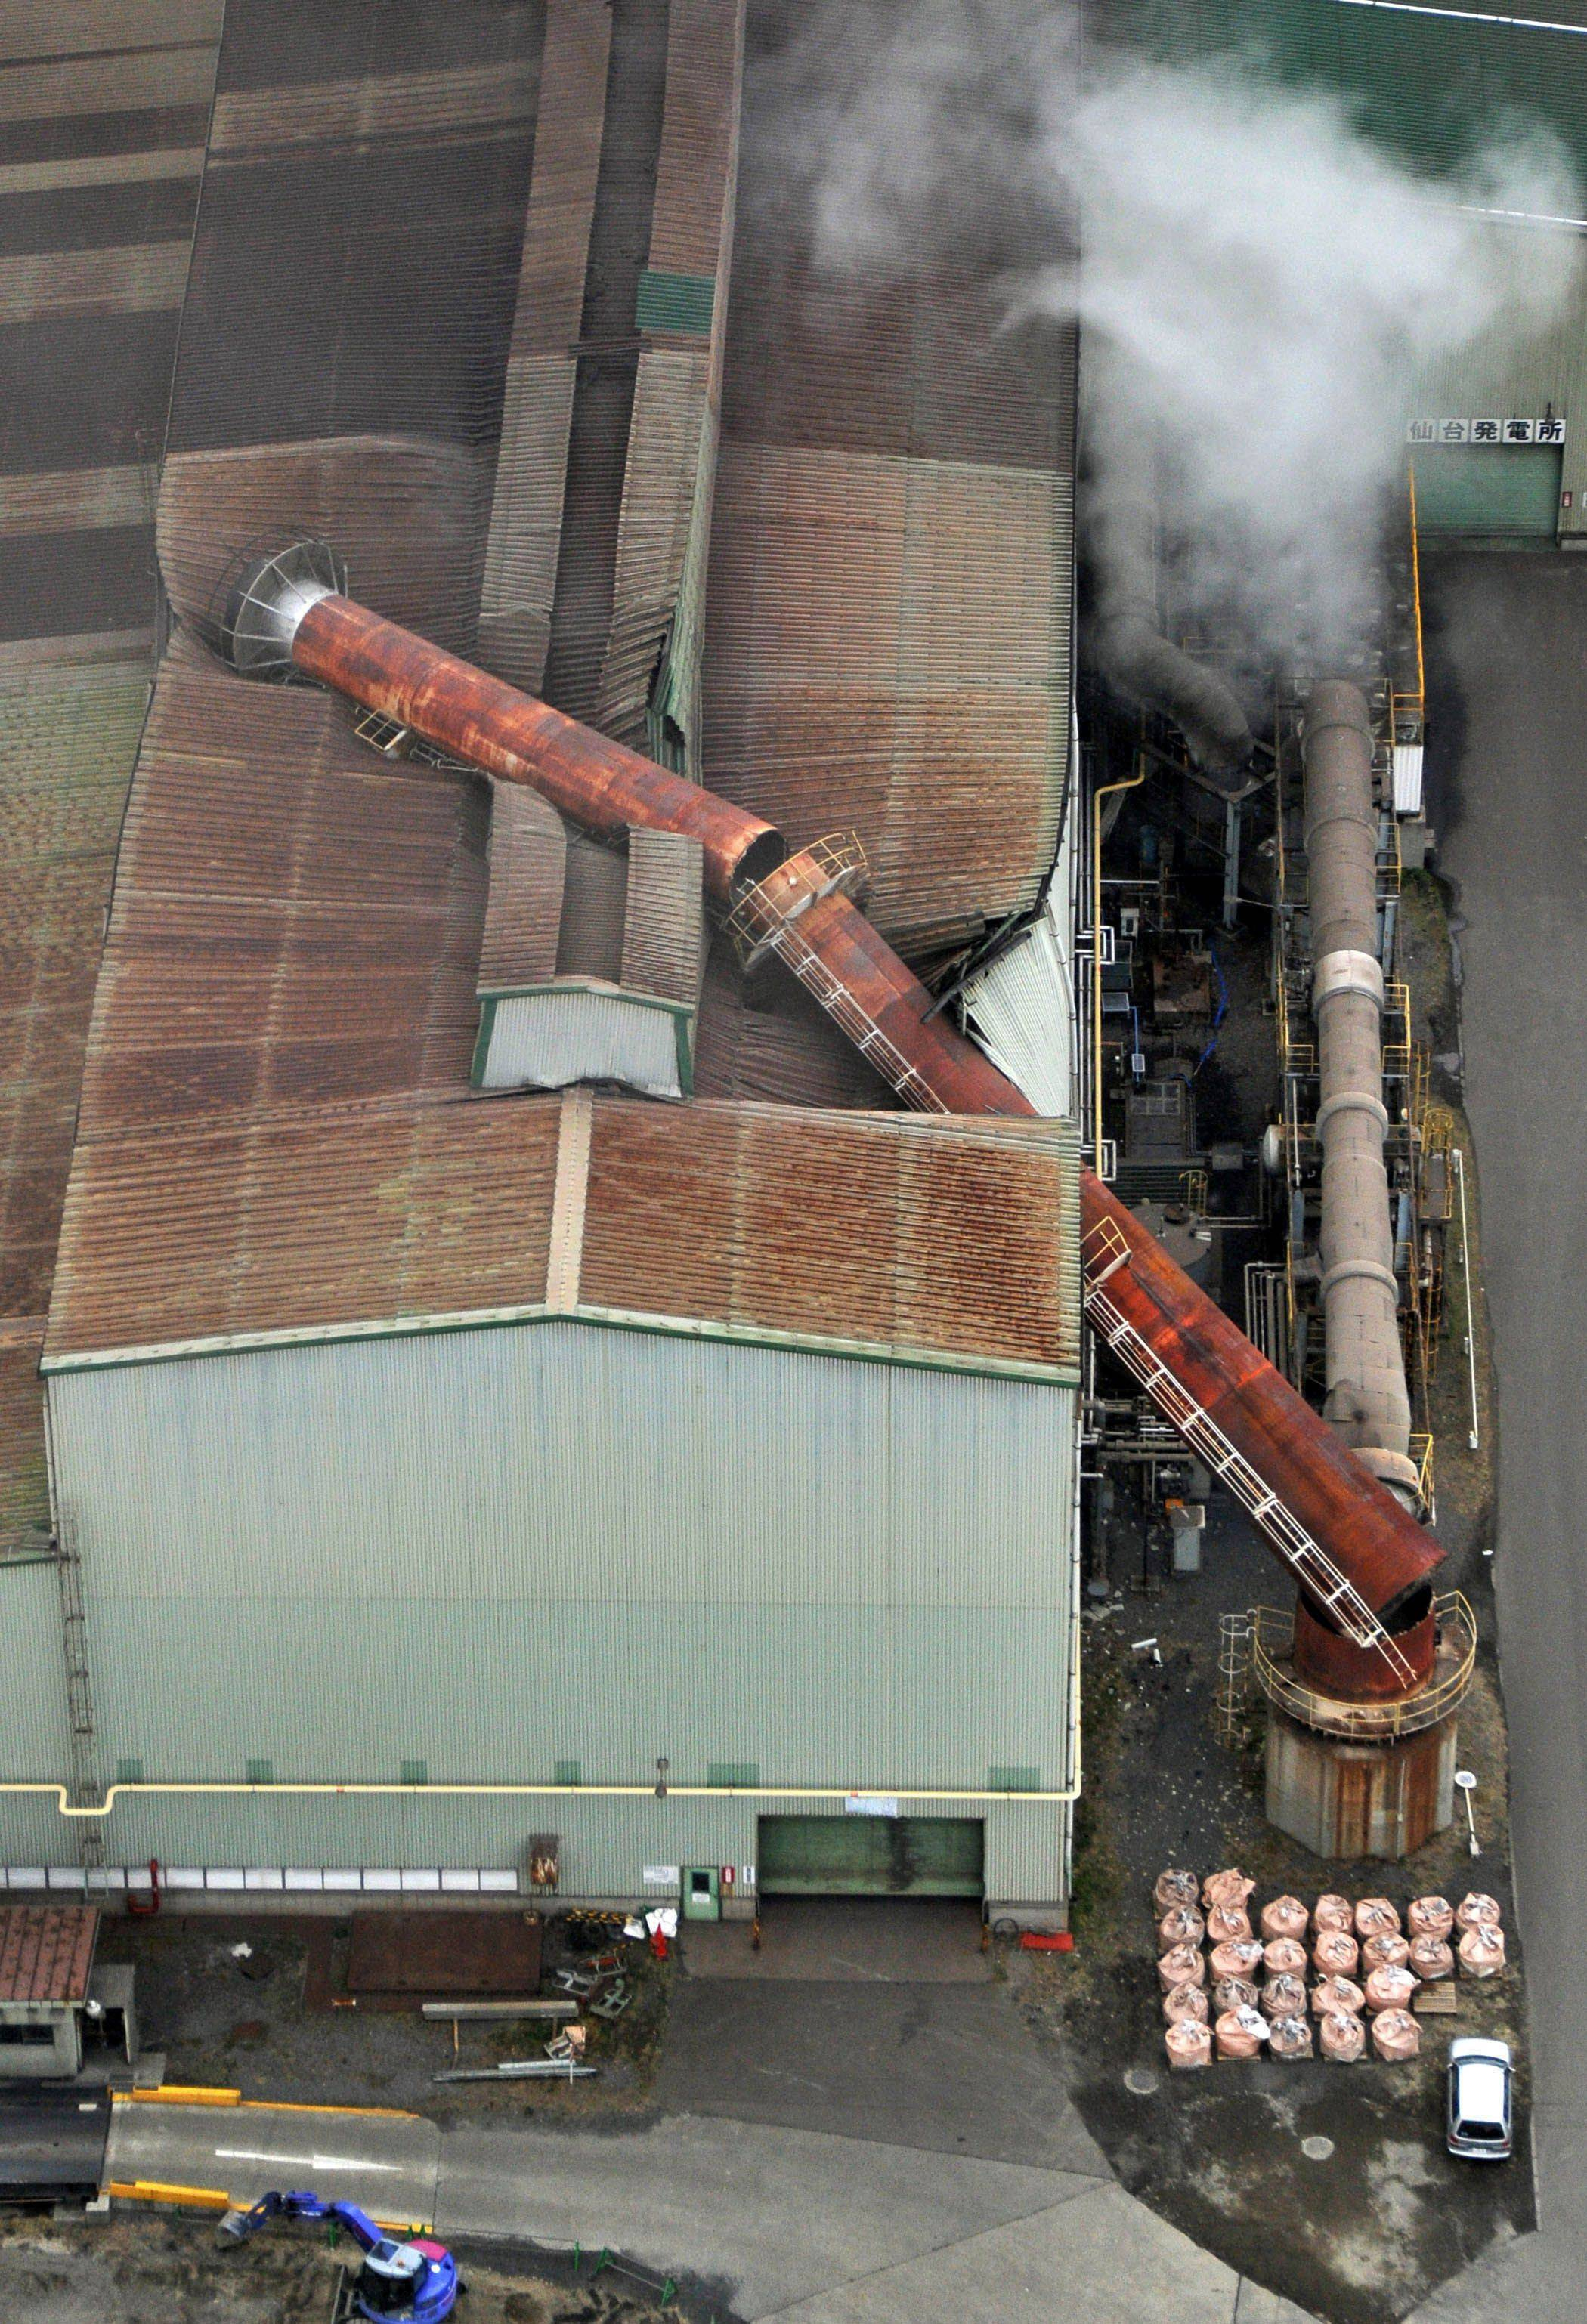 A chimney falls onto its factory in Sendai, Miyagi prefecture (state), Japan, after one of the largest earthquakes on record slammed Japan's eastern coasts Friday, March 11, 2011.